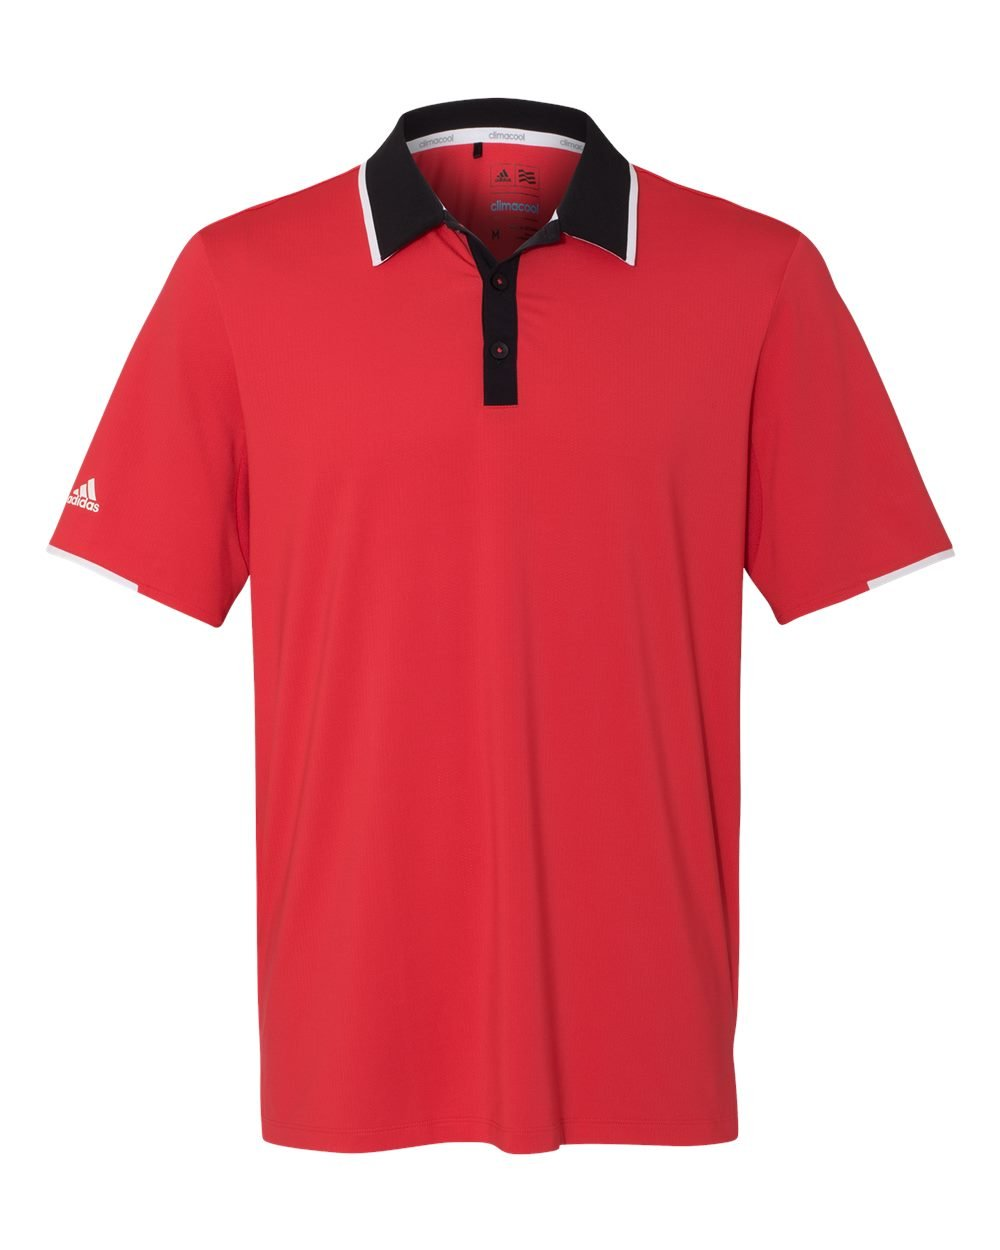 adidas Mens Climacool Performance Colorblock Sport Shirt (A166) -Ray Red/Bl -S